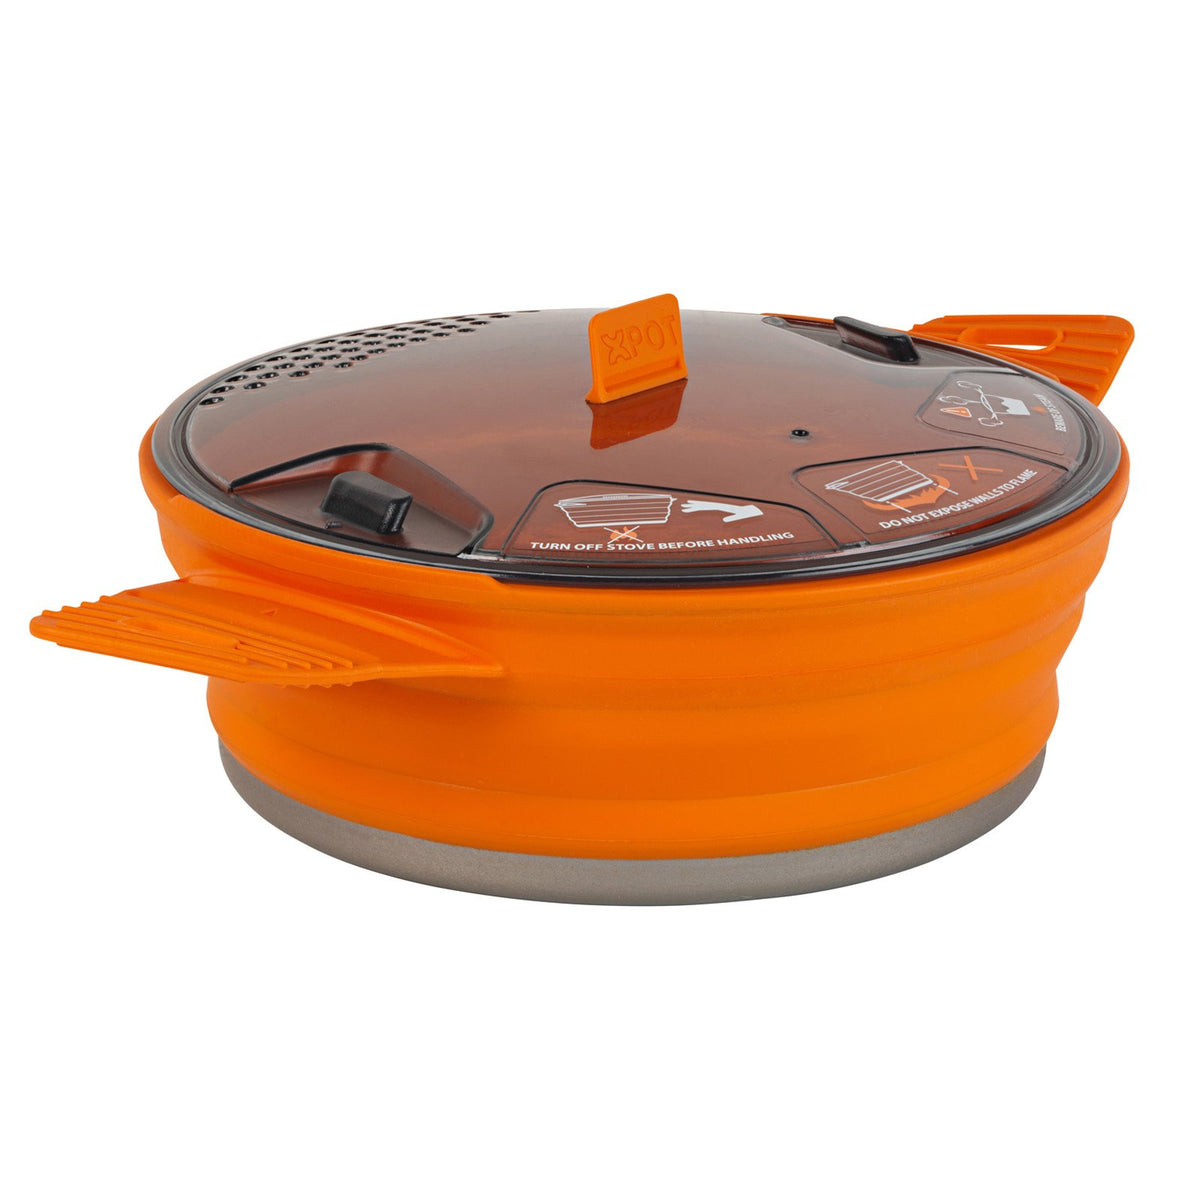 Sea to Summit X-Pot 1.4 Litre camping pot, shown fully erect in orange colour with clear lid